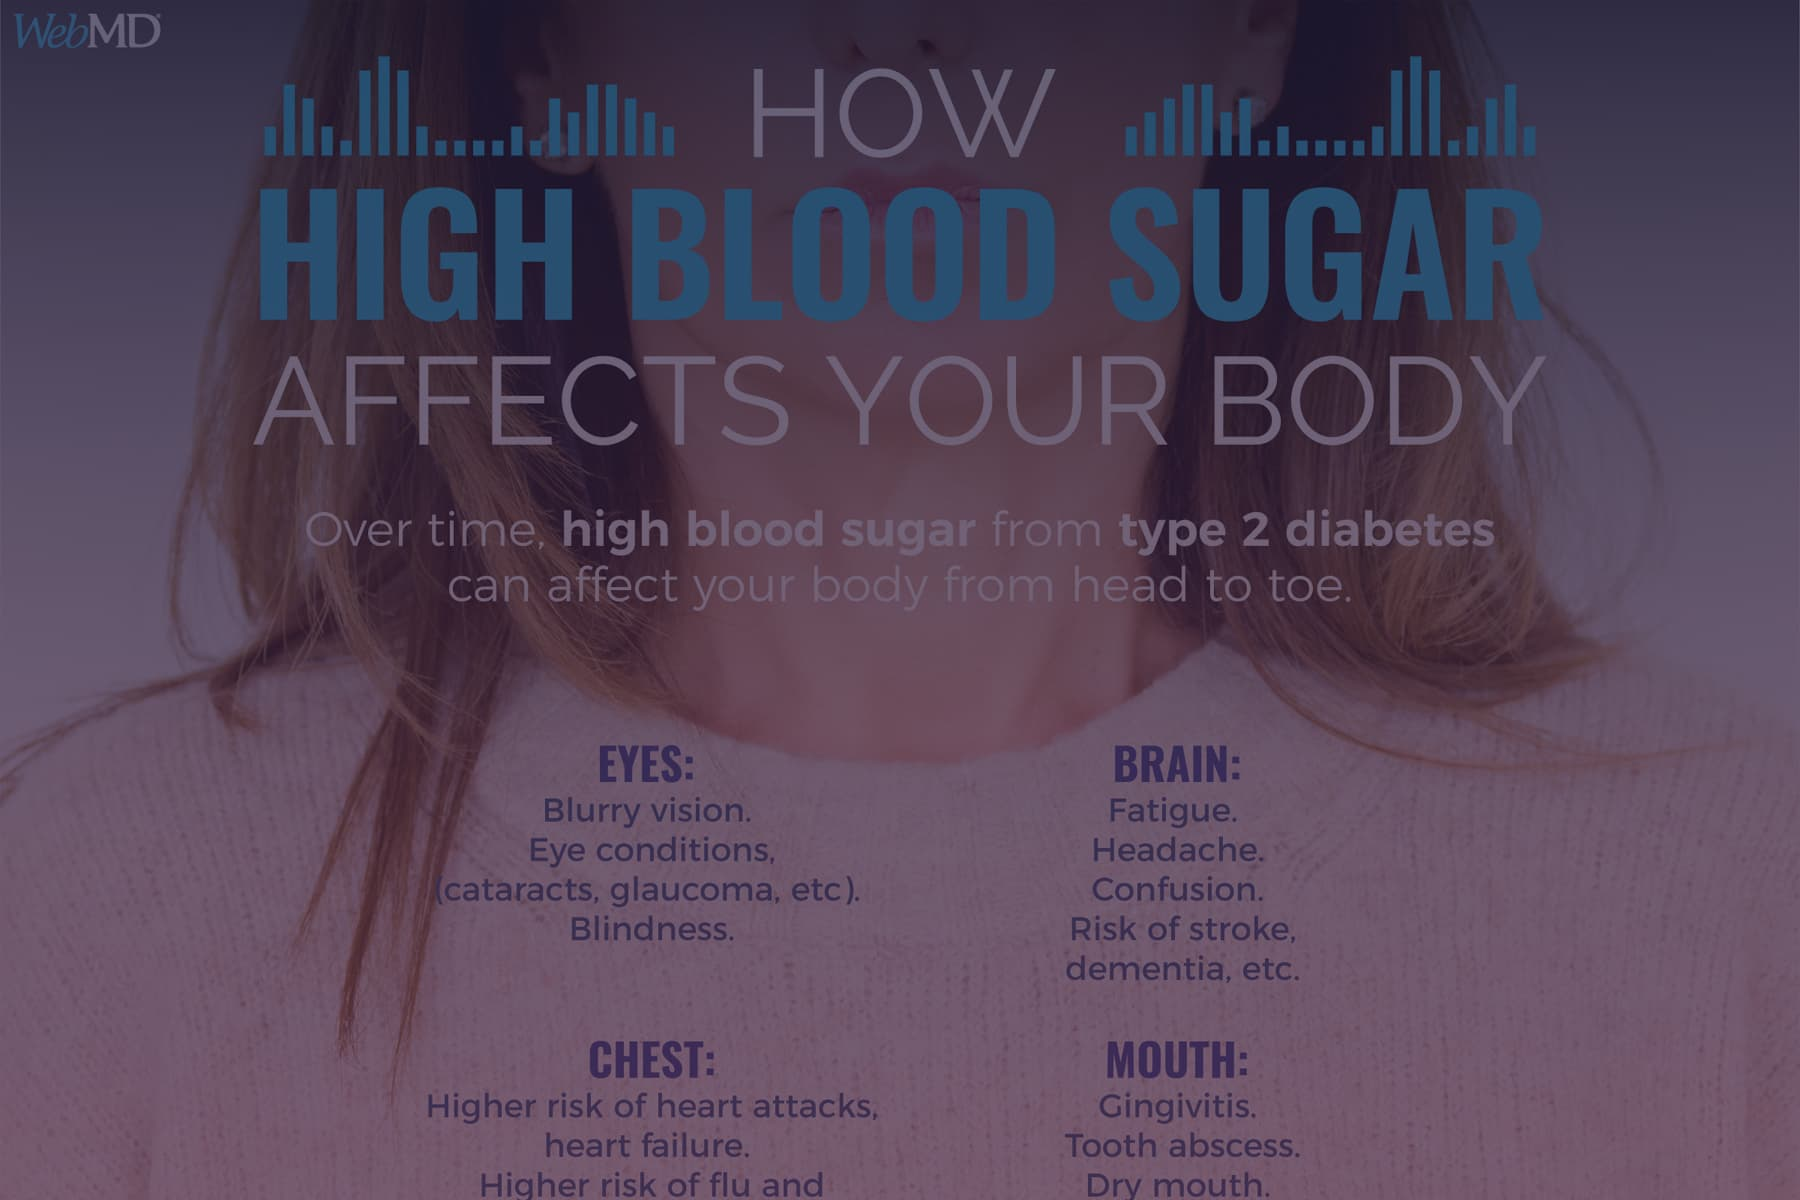 How high blood sugar affects your body infographic